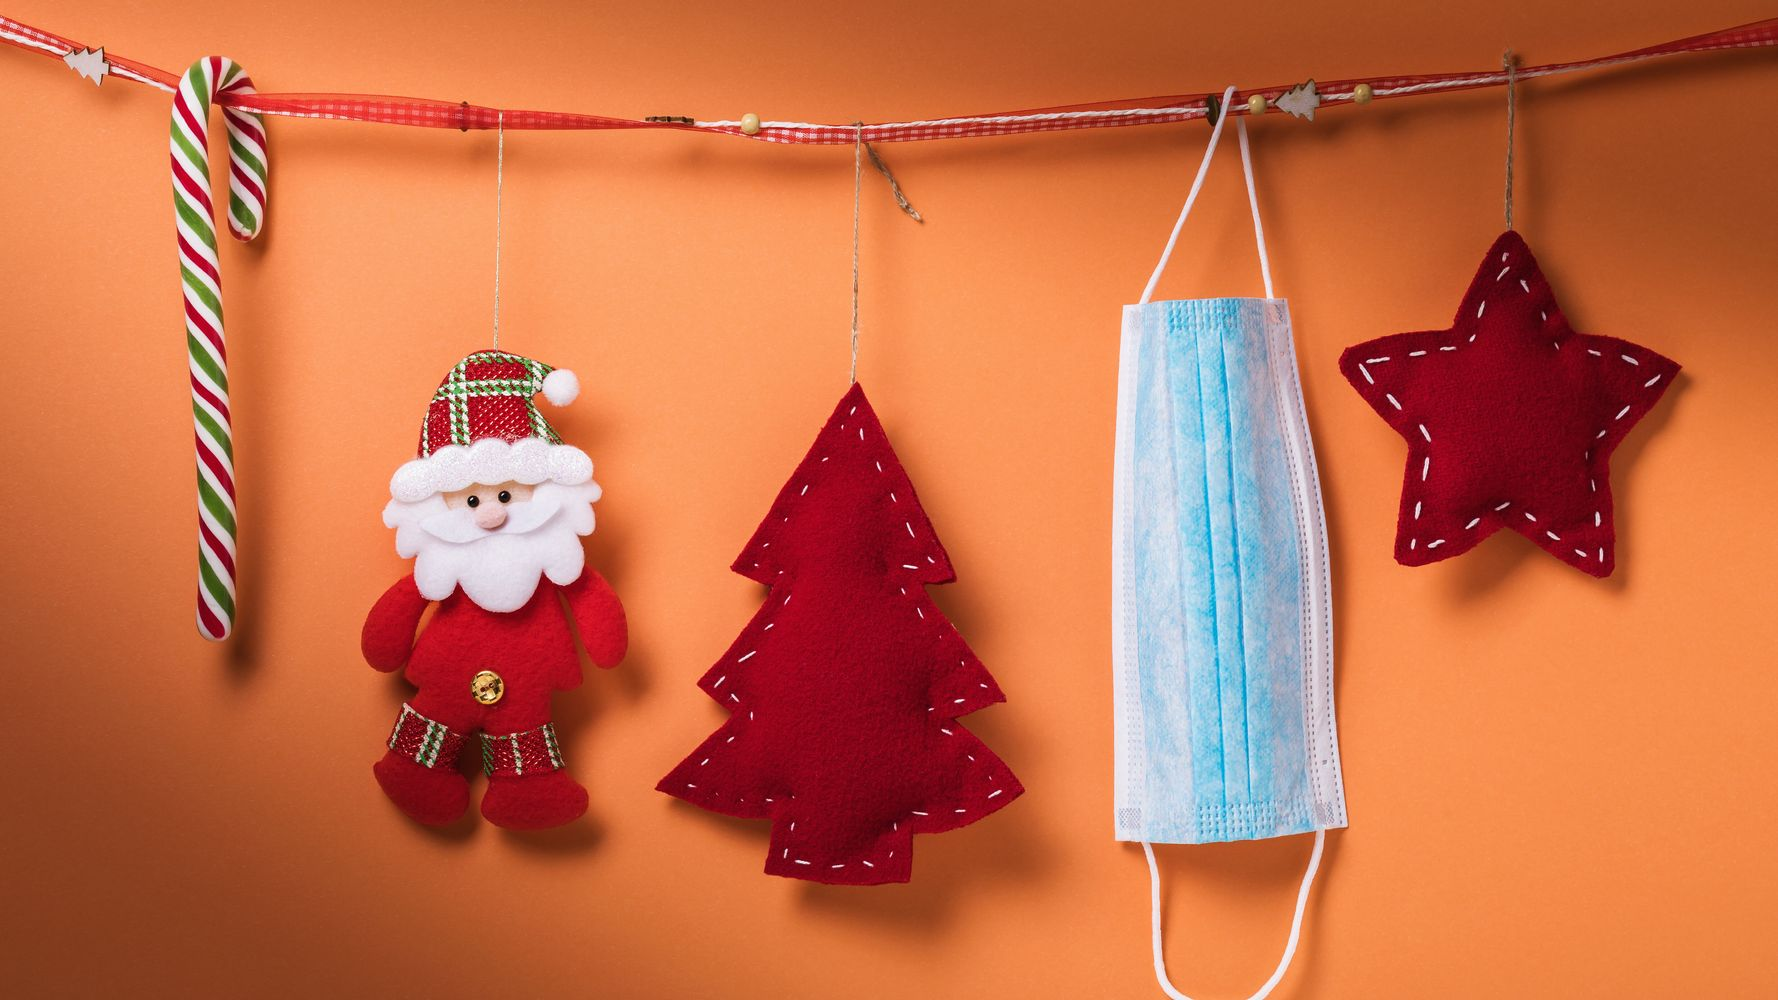 6 Ways To Keep The Magic Alive At Christmas For Kids (And Yourself)